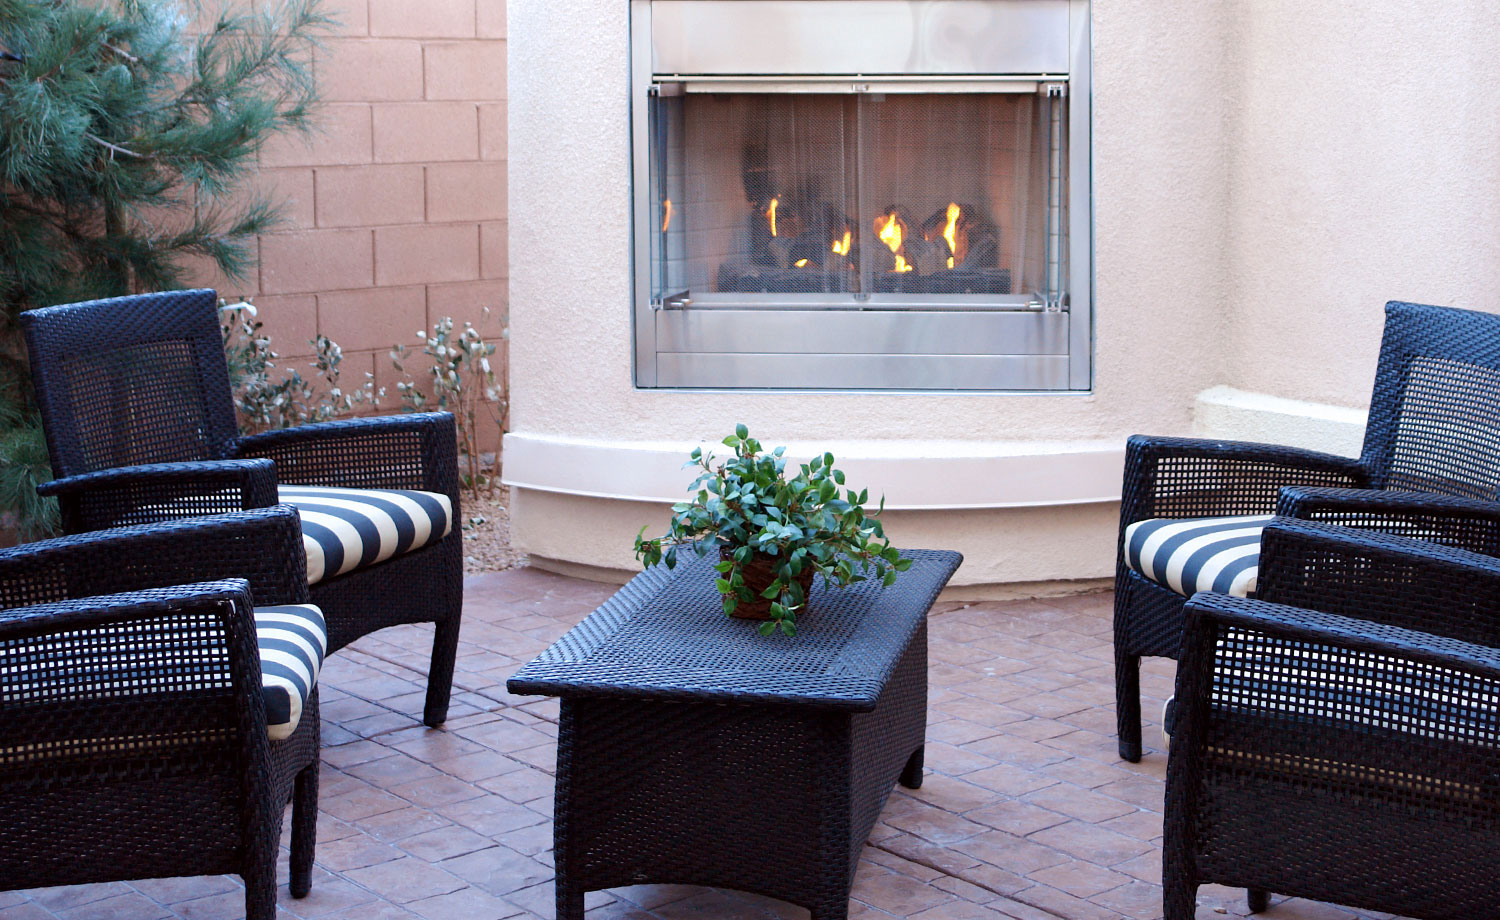 Outdoor seating area with fireplace.